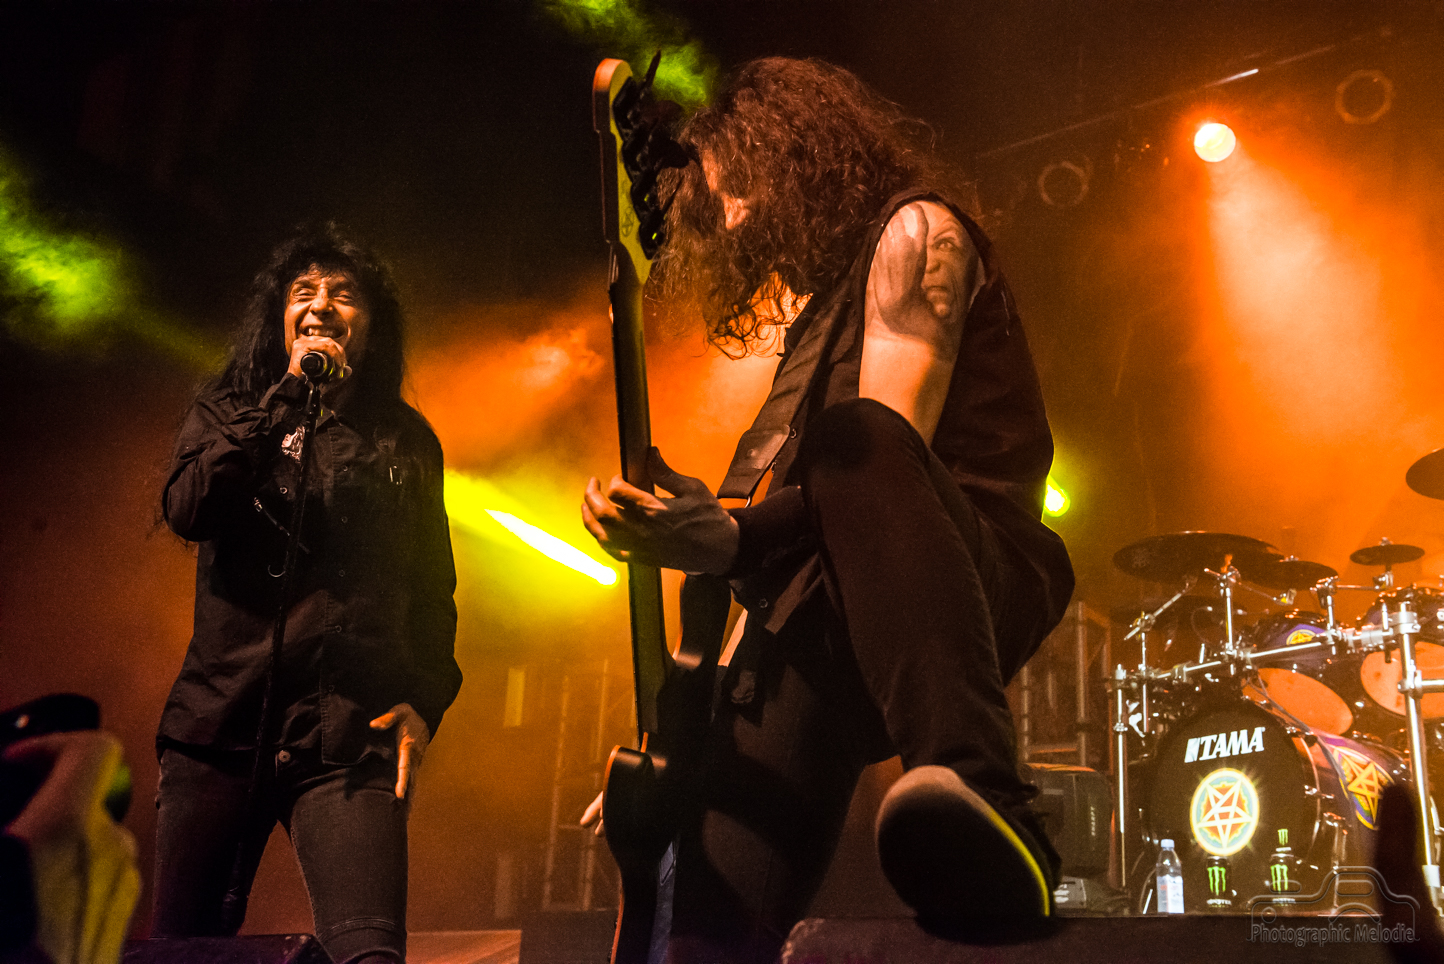 anthrax-killswitch-engage-havok-9630 – Photographic Melodie